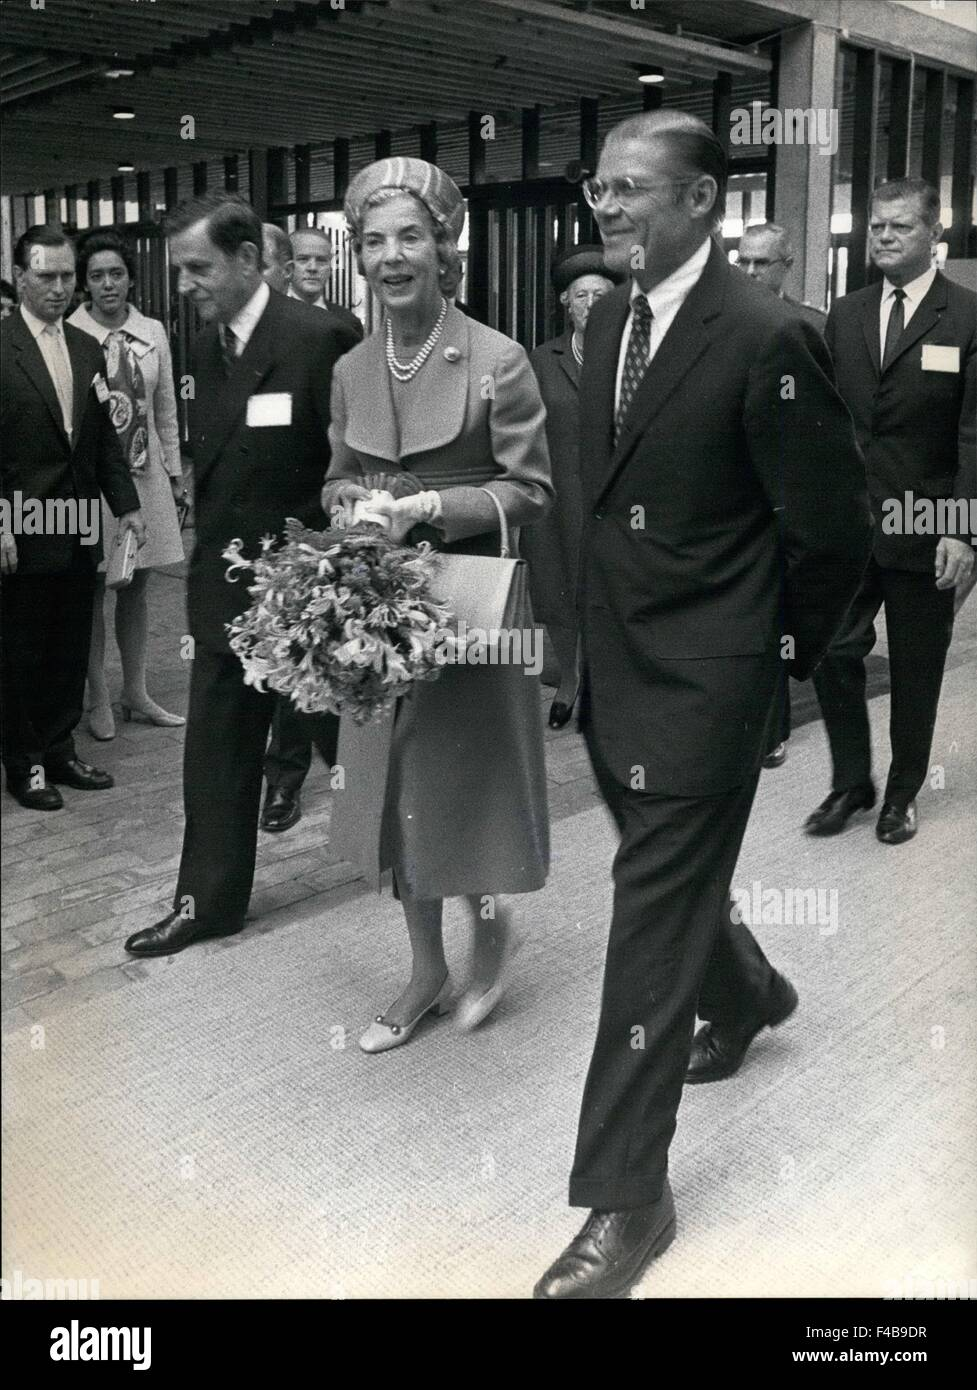 1973 - Opening of the IMF and the World Bank.: To day began the Annual Session of the International Monitary Foundation Stock Photo